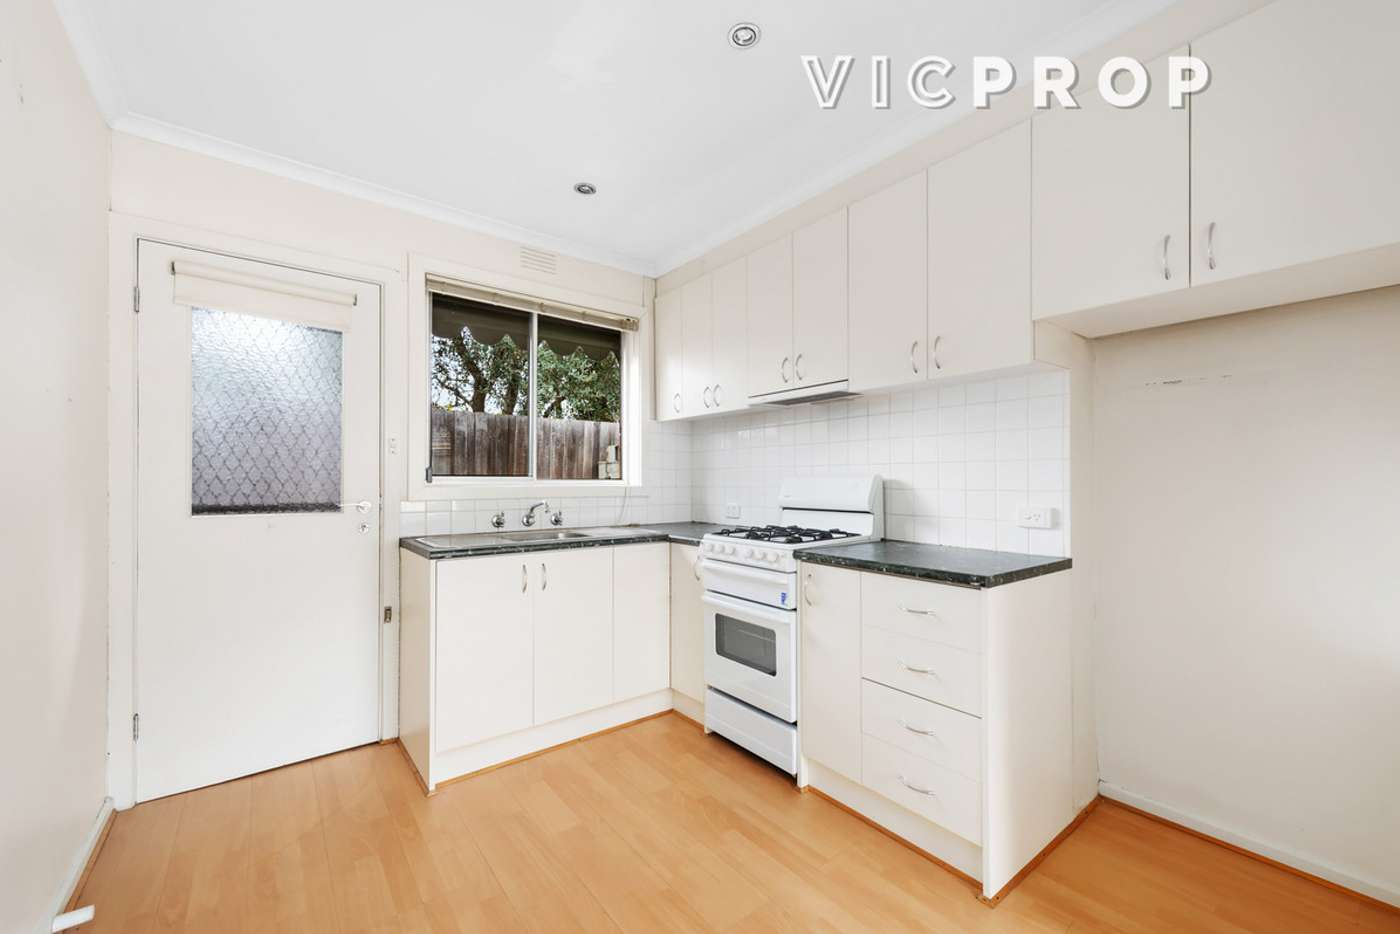 Sixth view of Homely unit listing, 5/157 Westgarth Street, Northcote VIC 3070